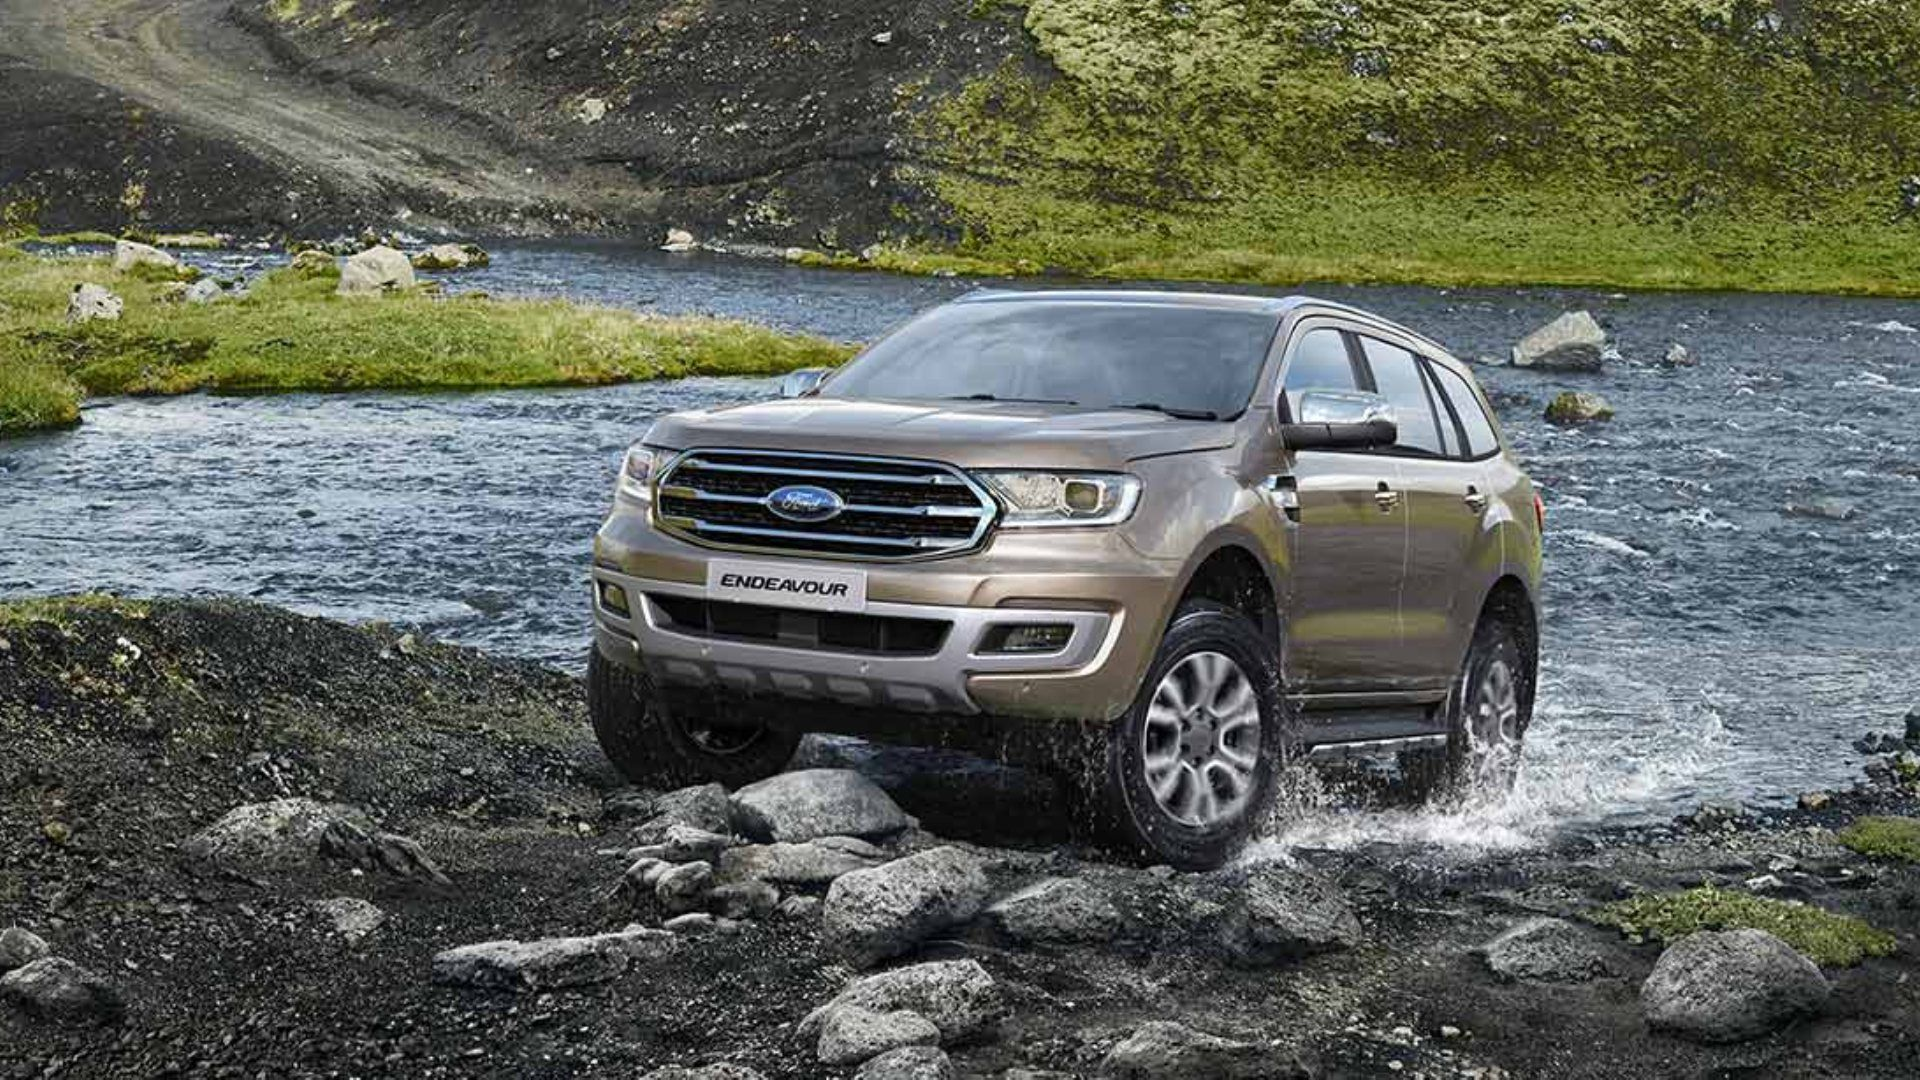 2021 Ford Everest Price, Design and Review